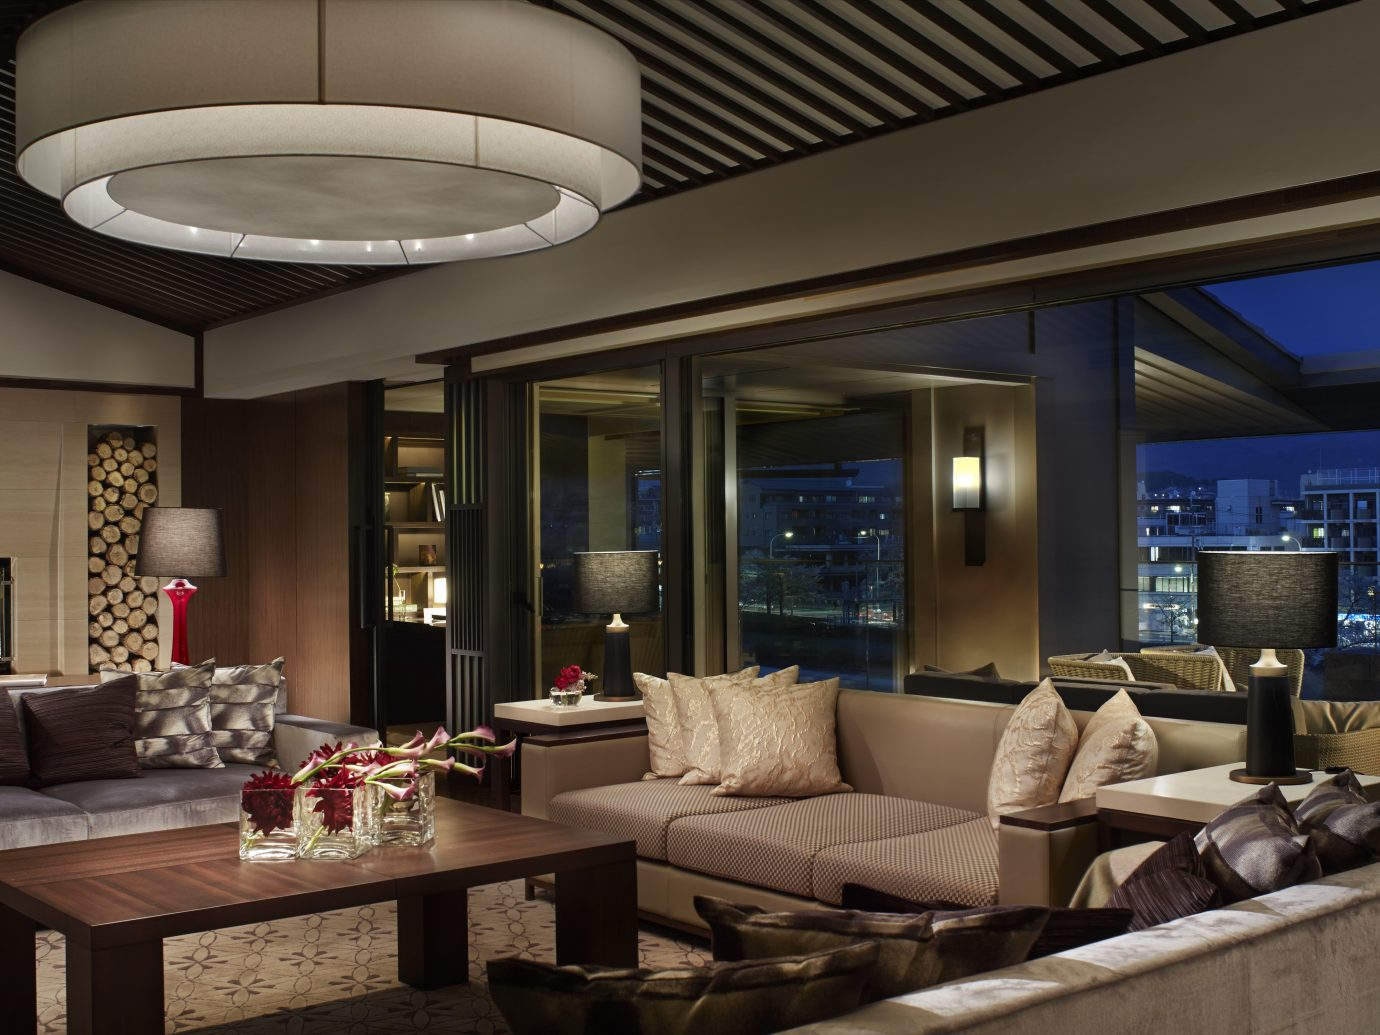 living room in suite at night time